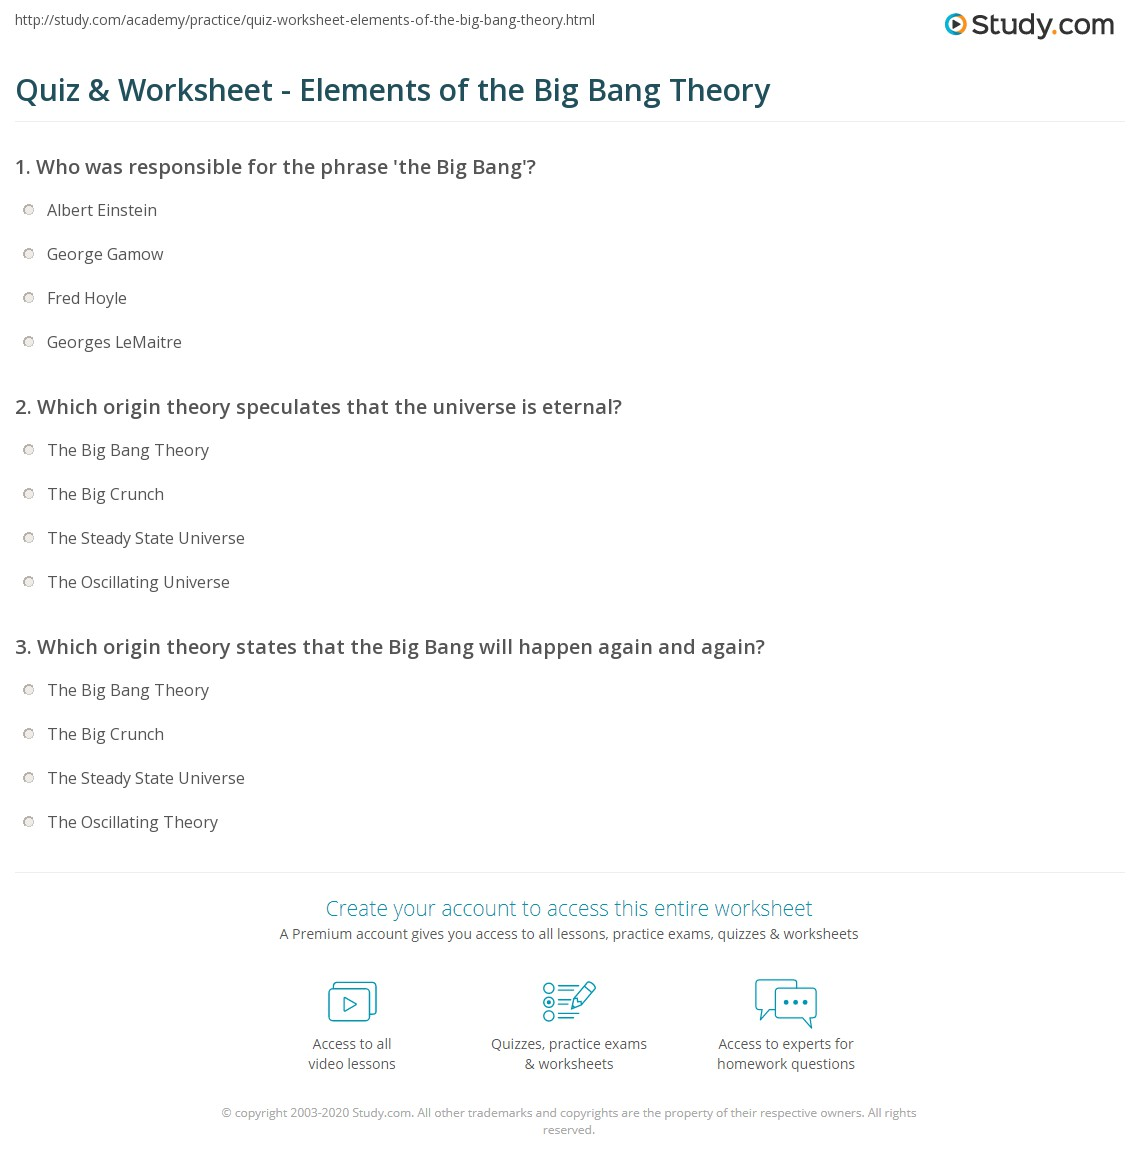 quiz worksheet elements of the big bang theory. Black Bedroom Furniture Sets. Home Design Ideas